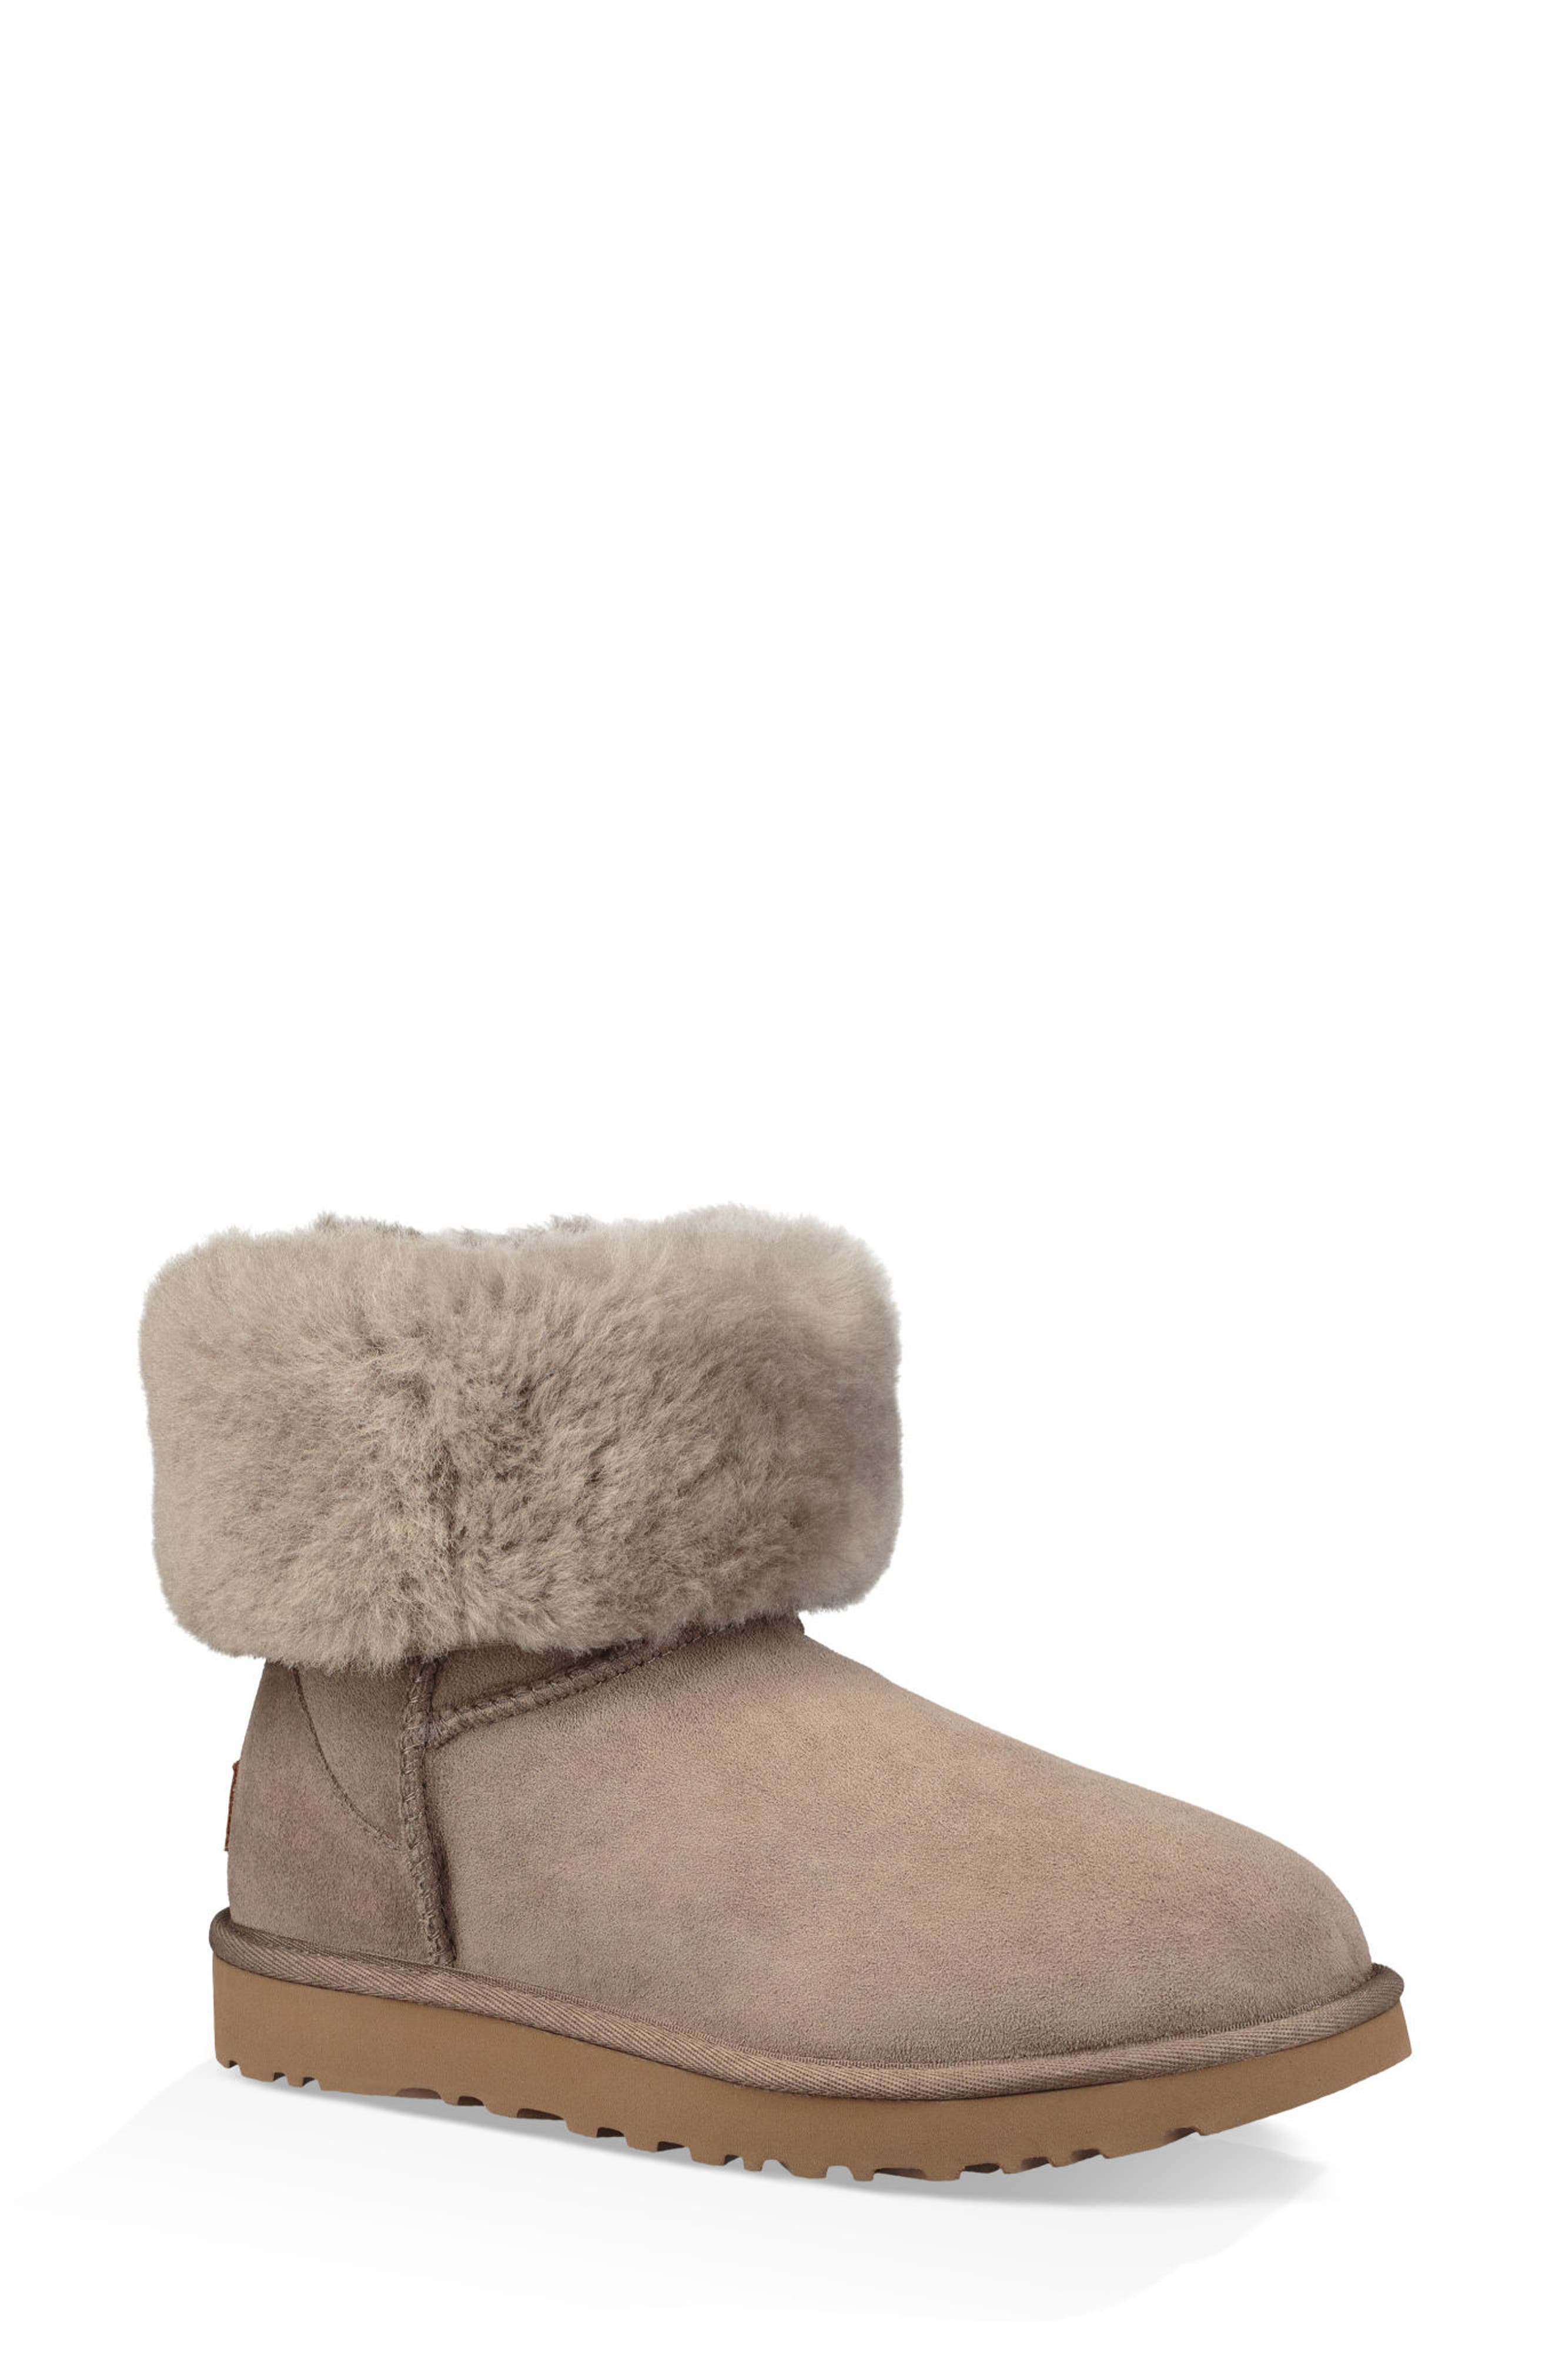 'Classic II' Genuine Shearling Lined Short Boot,                             Alternate thumbnail 2, color,                             BRINDLE SUEDE